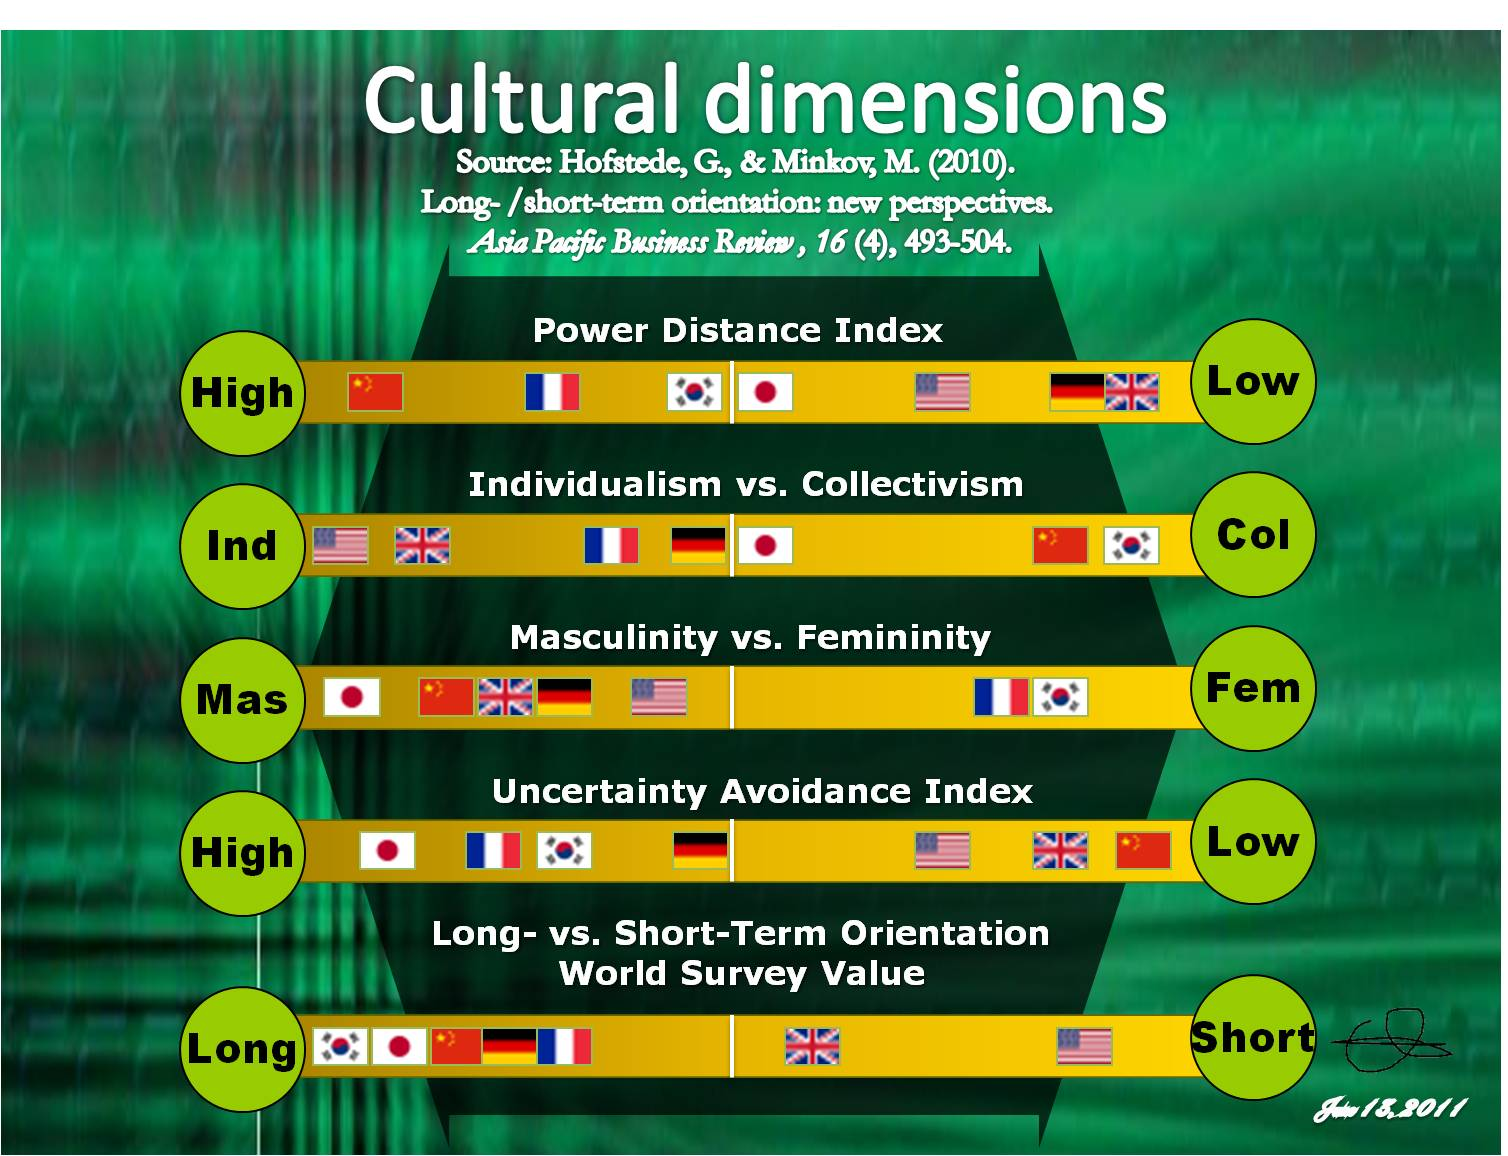 hofstede s cultural dimensions japan That said, japan does much better than asian neighbours like china (score of 80), india (77), malaysia (104), philippines (94), singapore (74), thailand (64) and vietnam (70) in fact, japan comes in with a score quite similar to south korea (60) and taiwan (58), other developed asian countries.